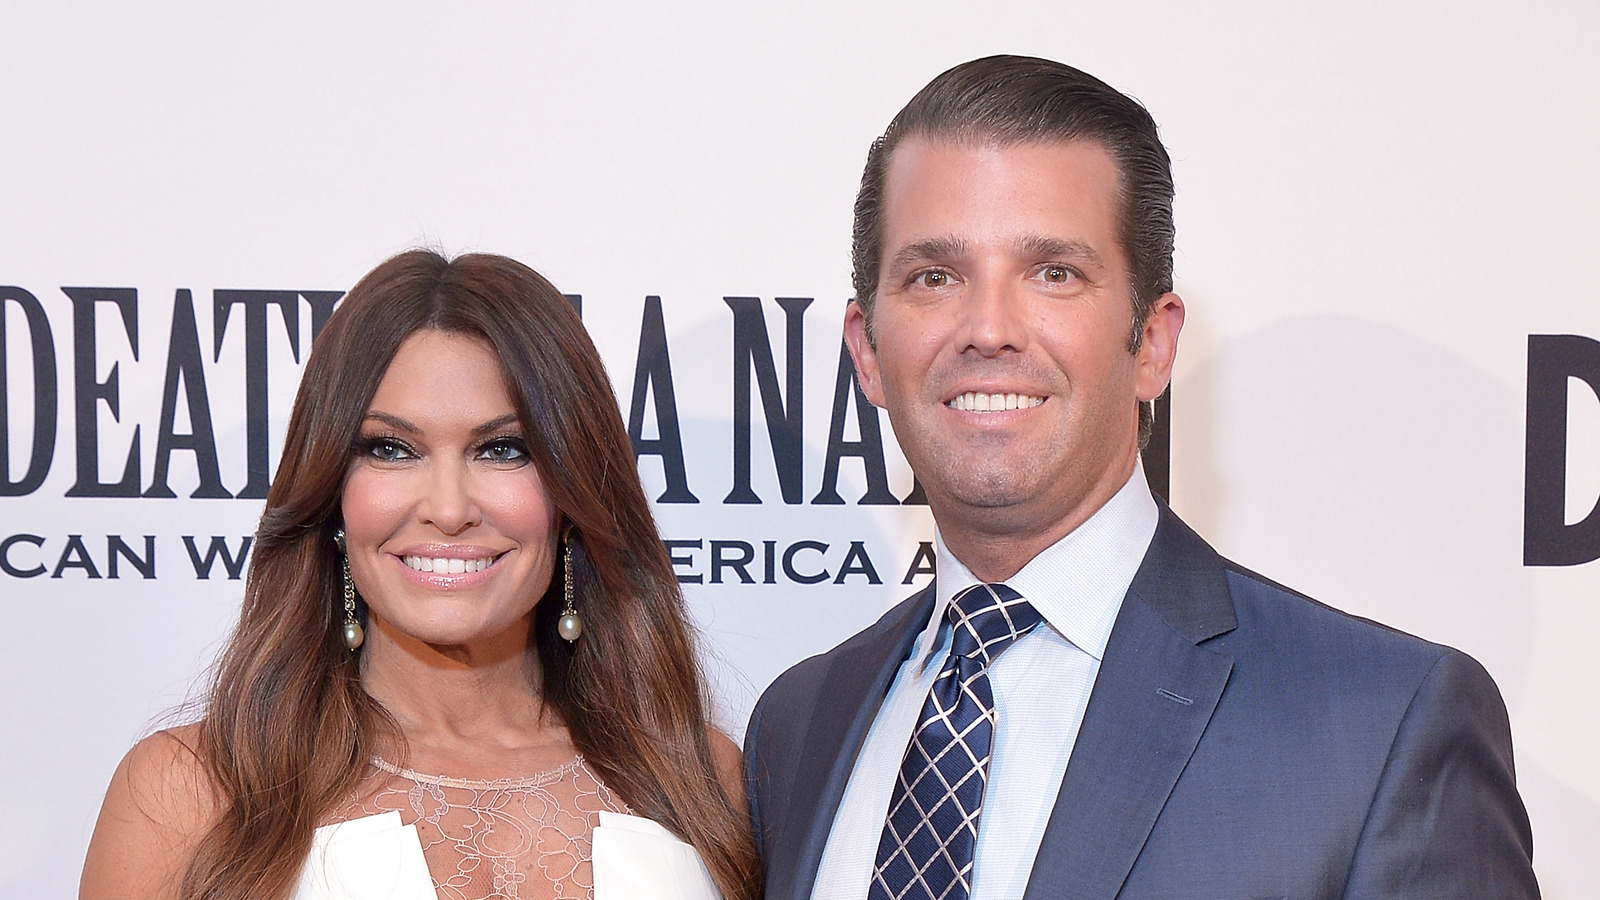 The Truth About Donald Jr. And Kimberly Guilfoyle's Insanely Lavish Life